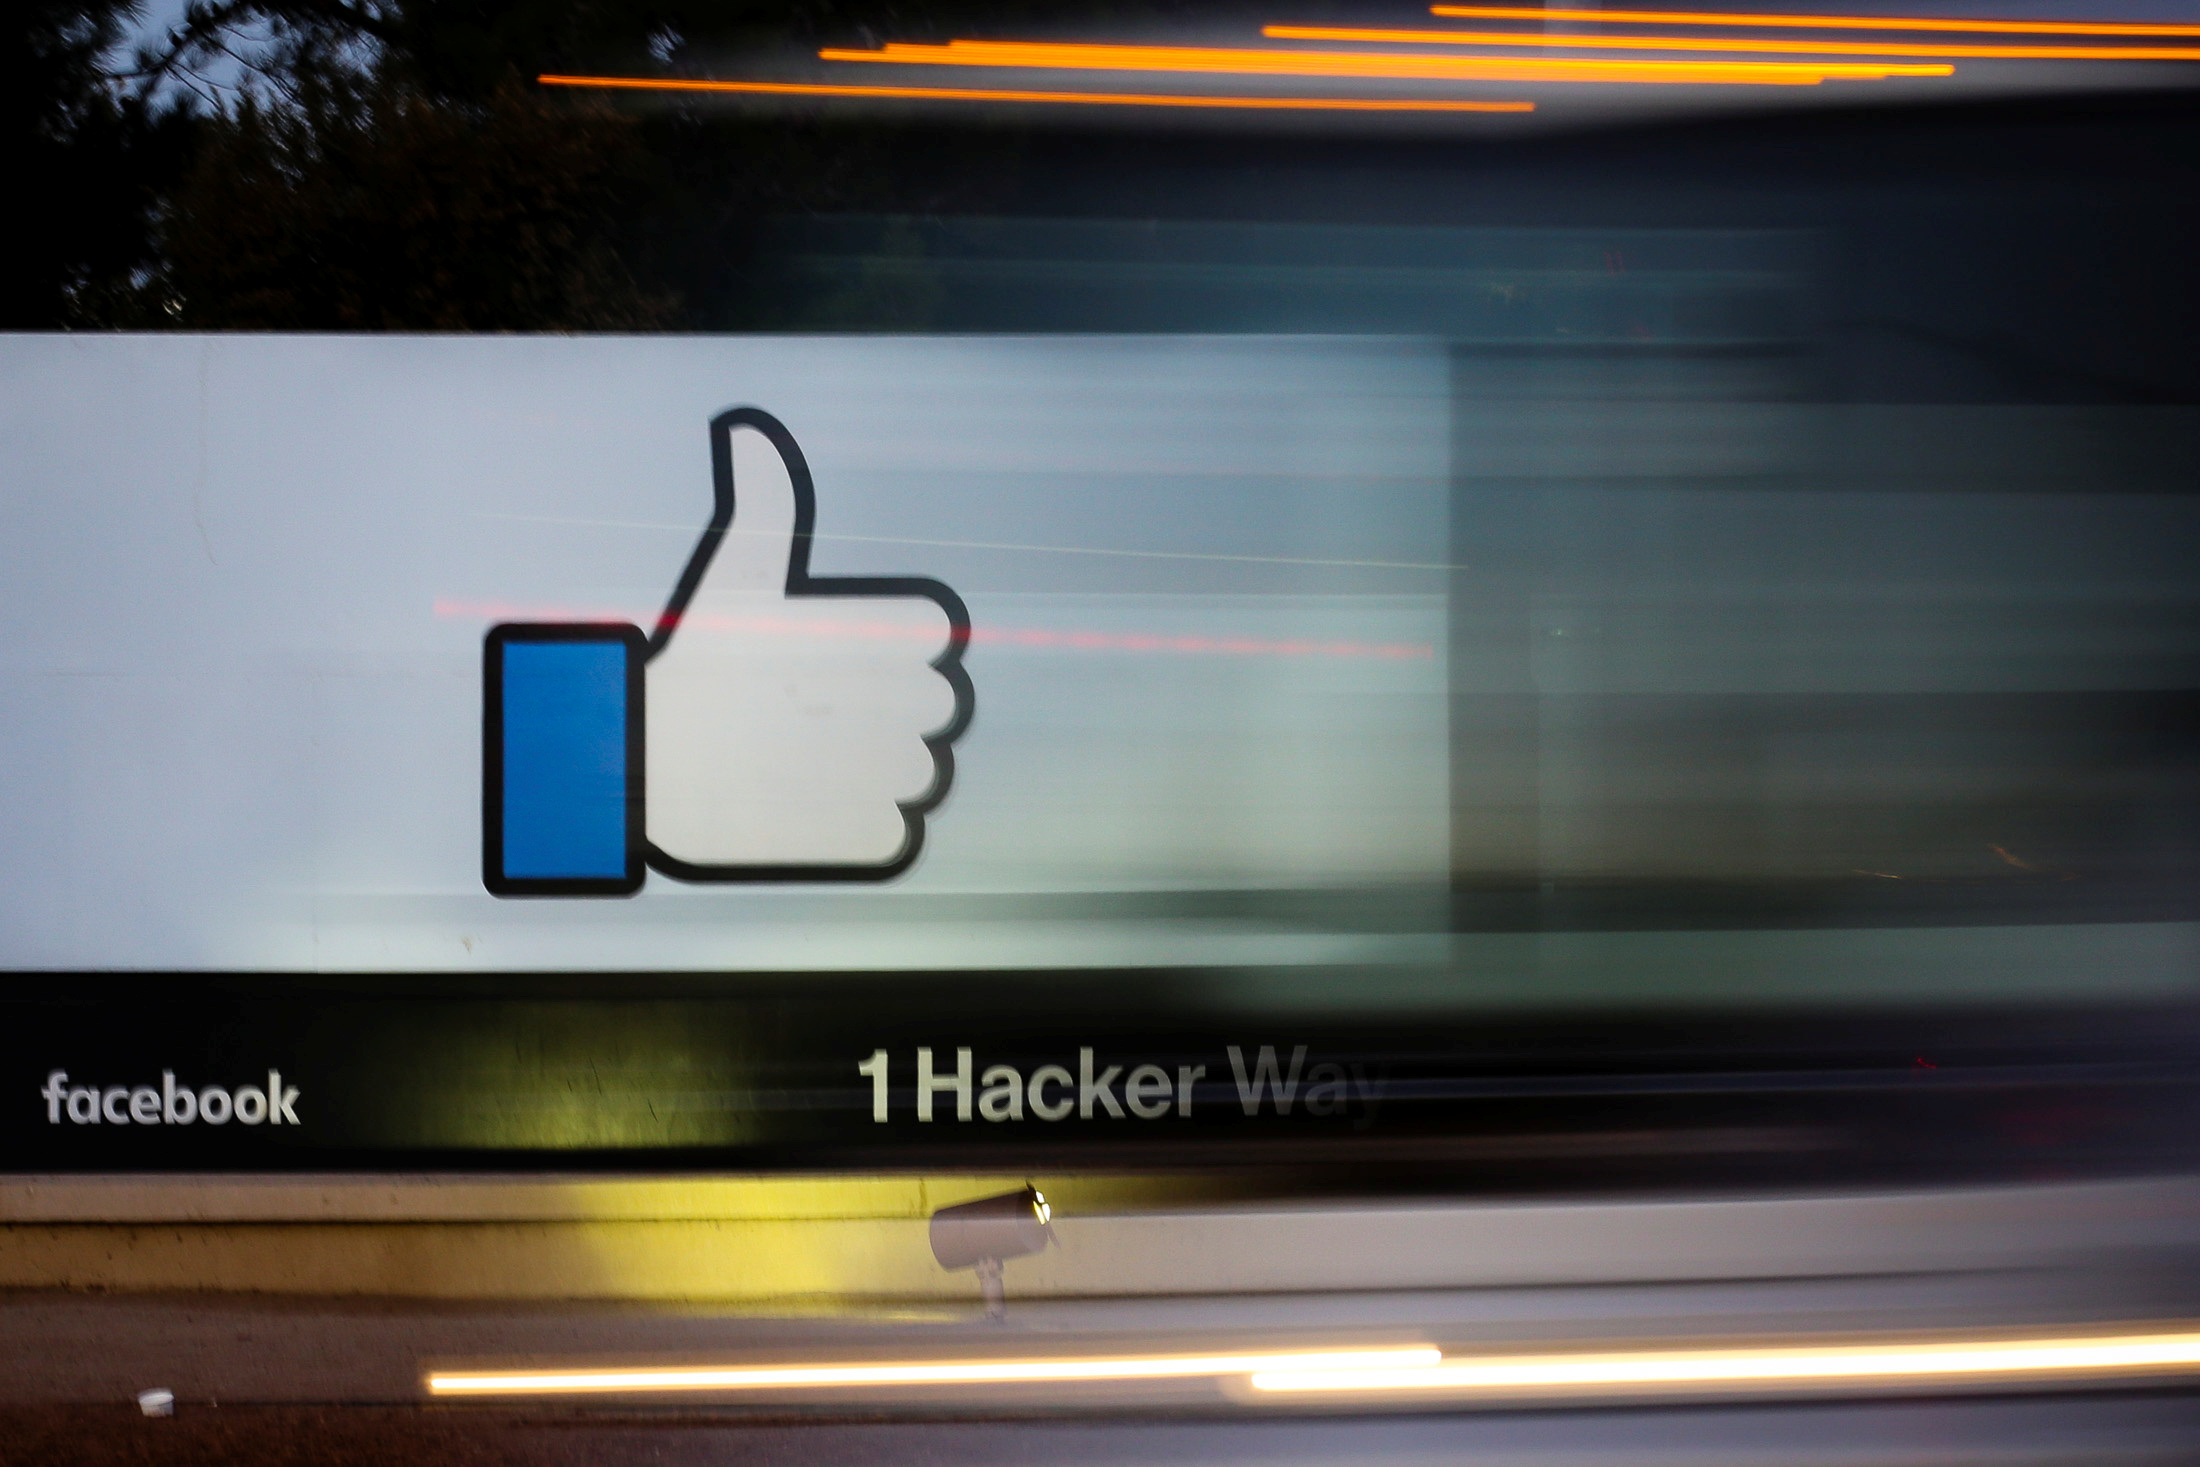 Facebook is reportedly developing custom server chips